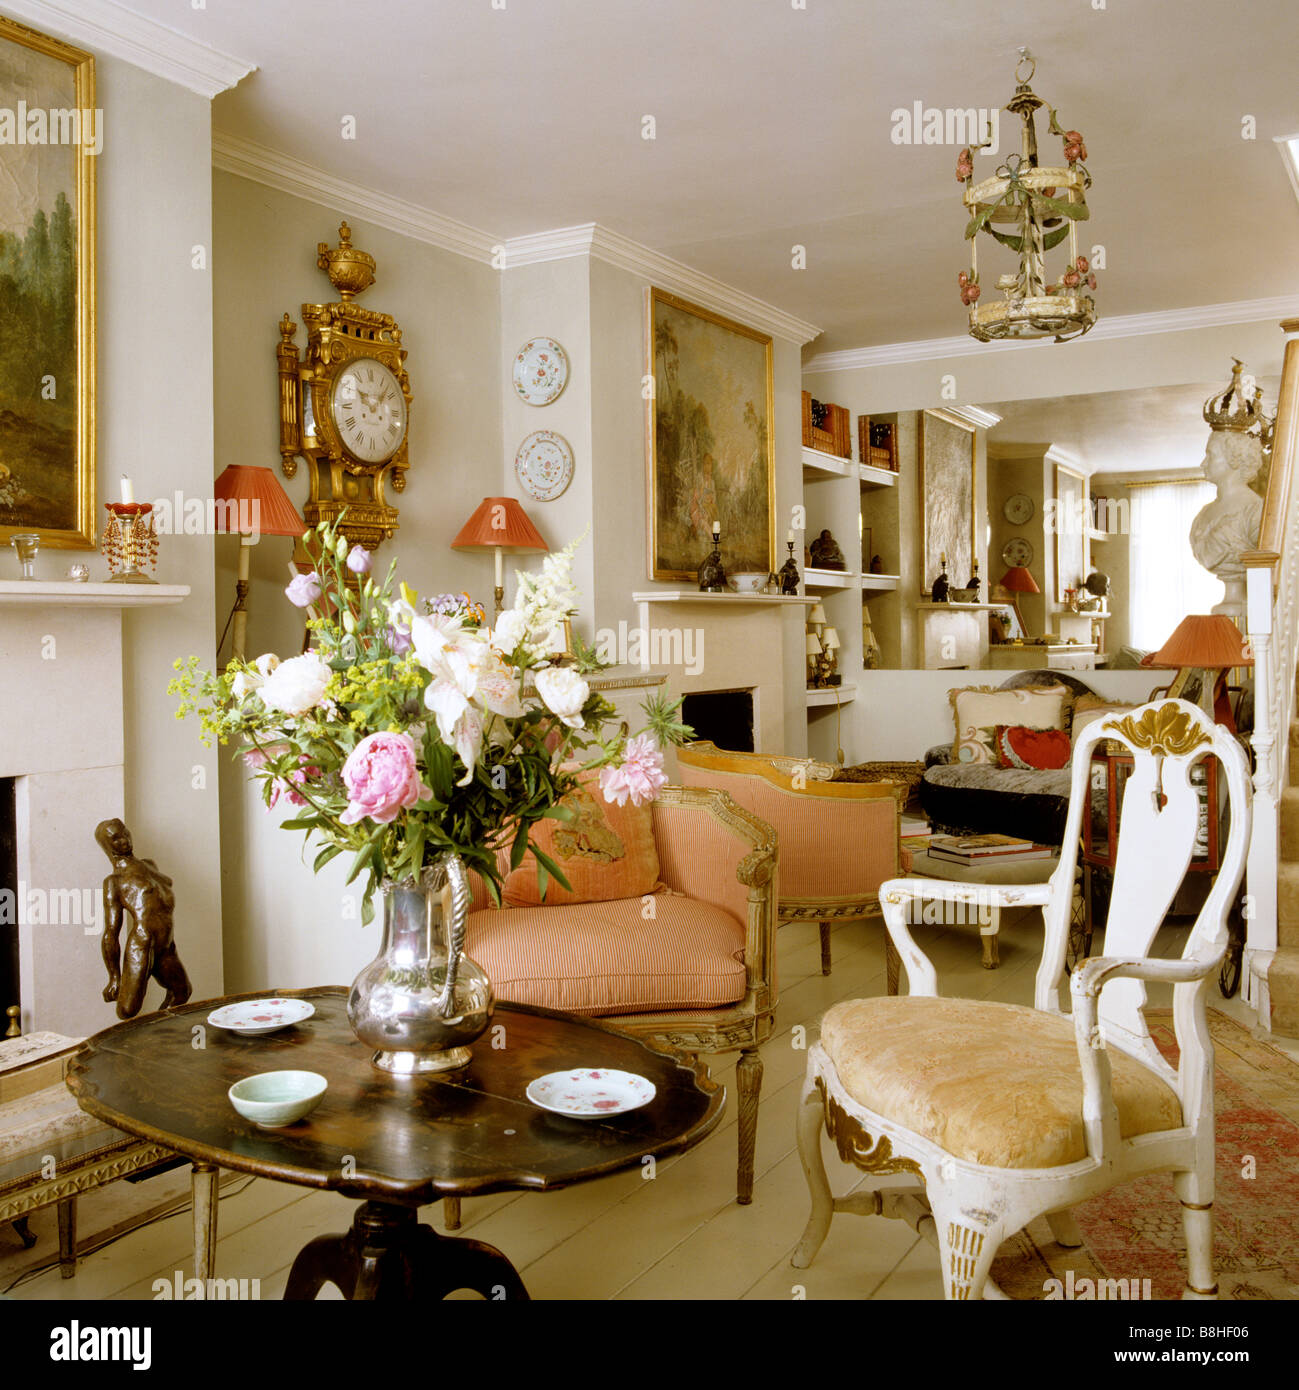 London Drawing Room With 18th And 19th Century Furniture And Artefacts